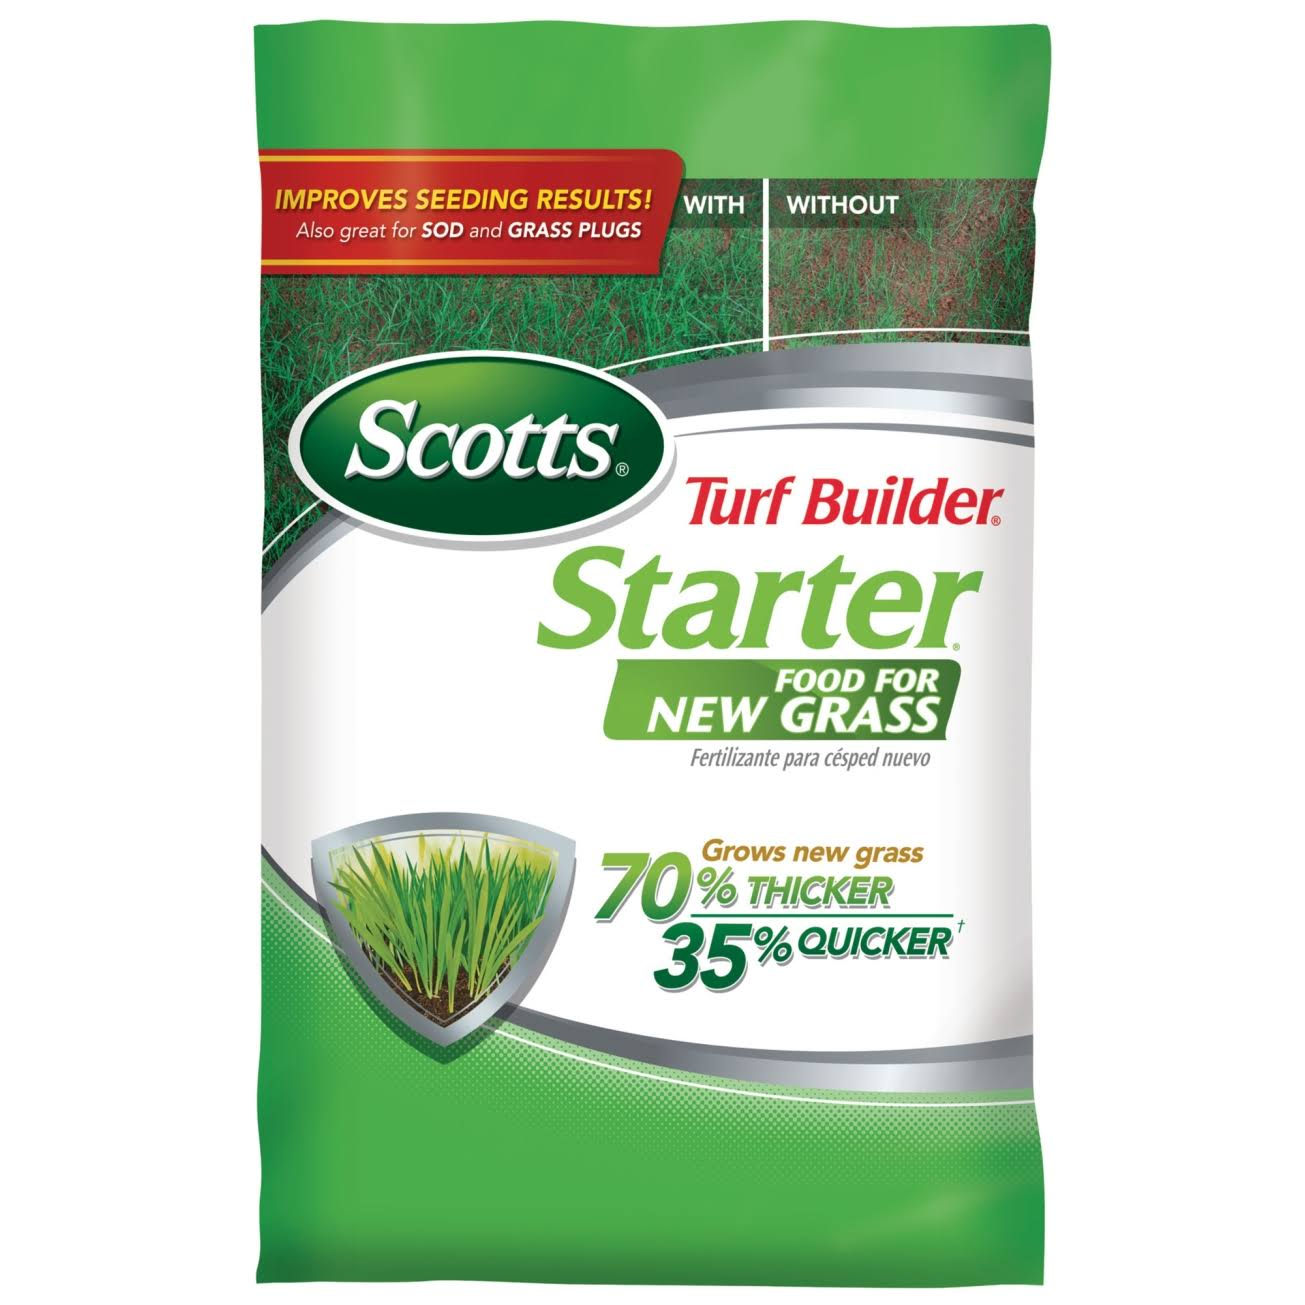 Scotts Turf Builder New Grass Food Starter Fertilizer - 15lb